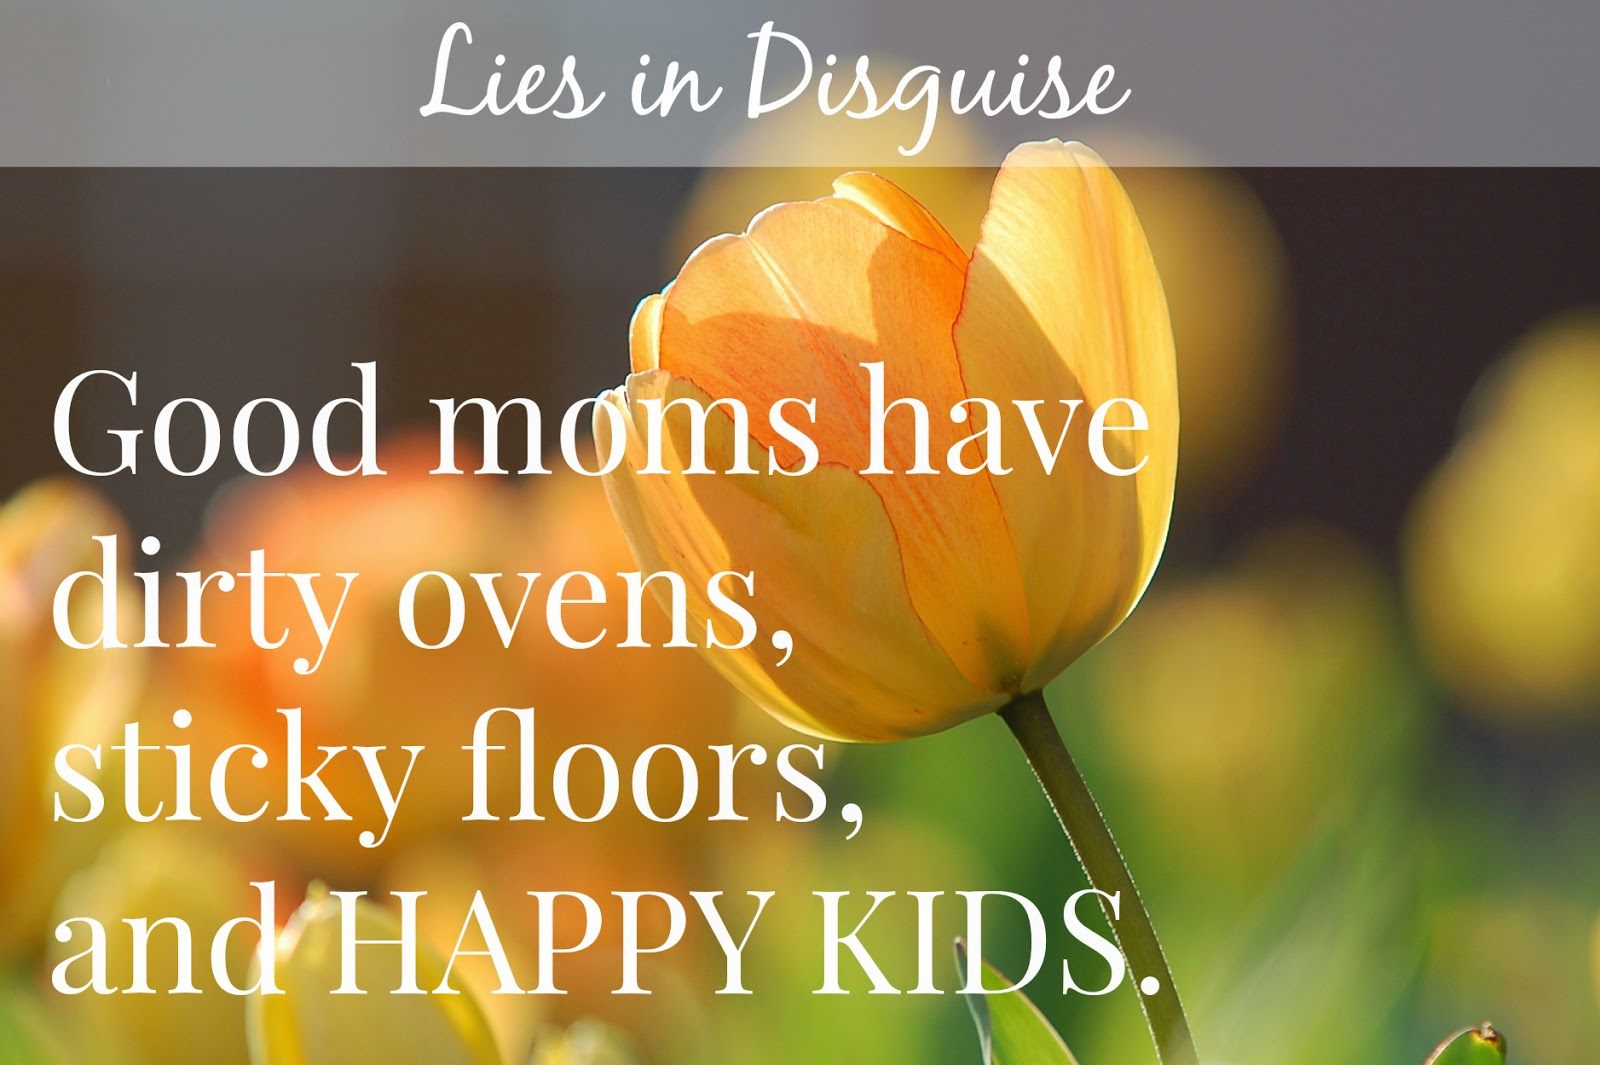 Lies in Disguise - Good moms have happy kids [from the jensens blog]